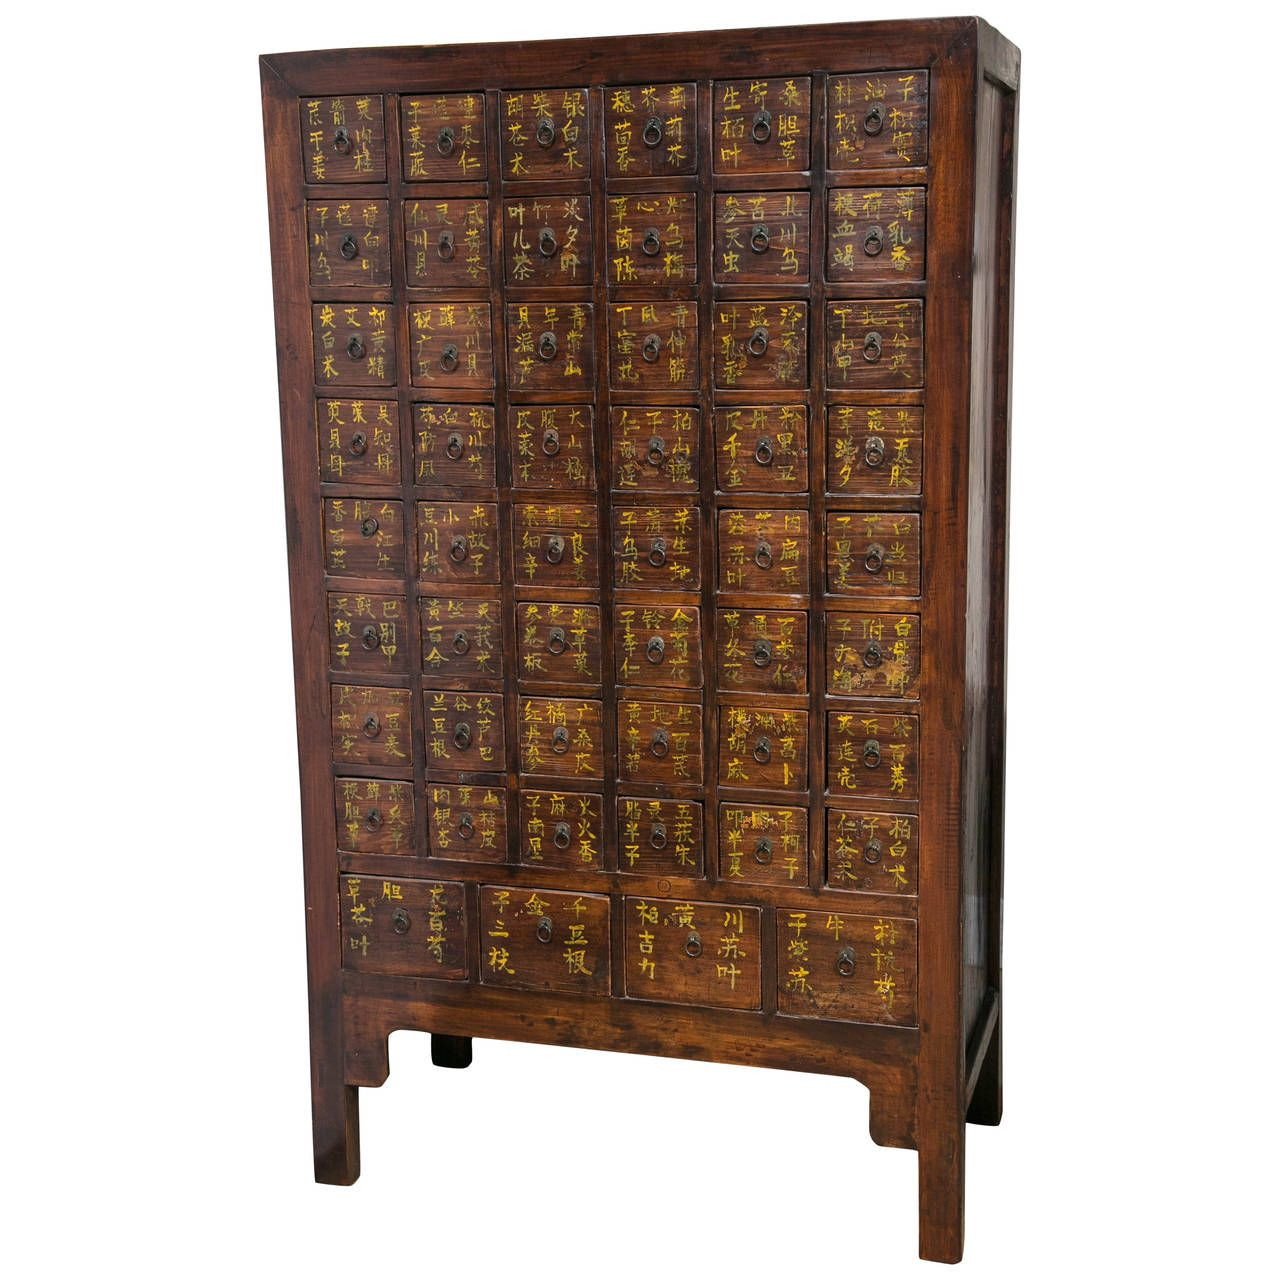 Vintage apothecary cabinet for sale - Antique Chinese Apothecary Medicine Chest